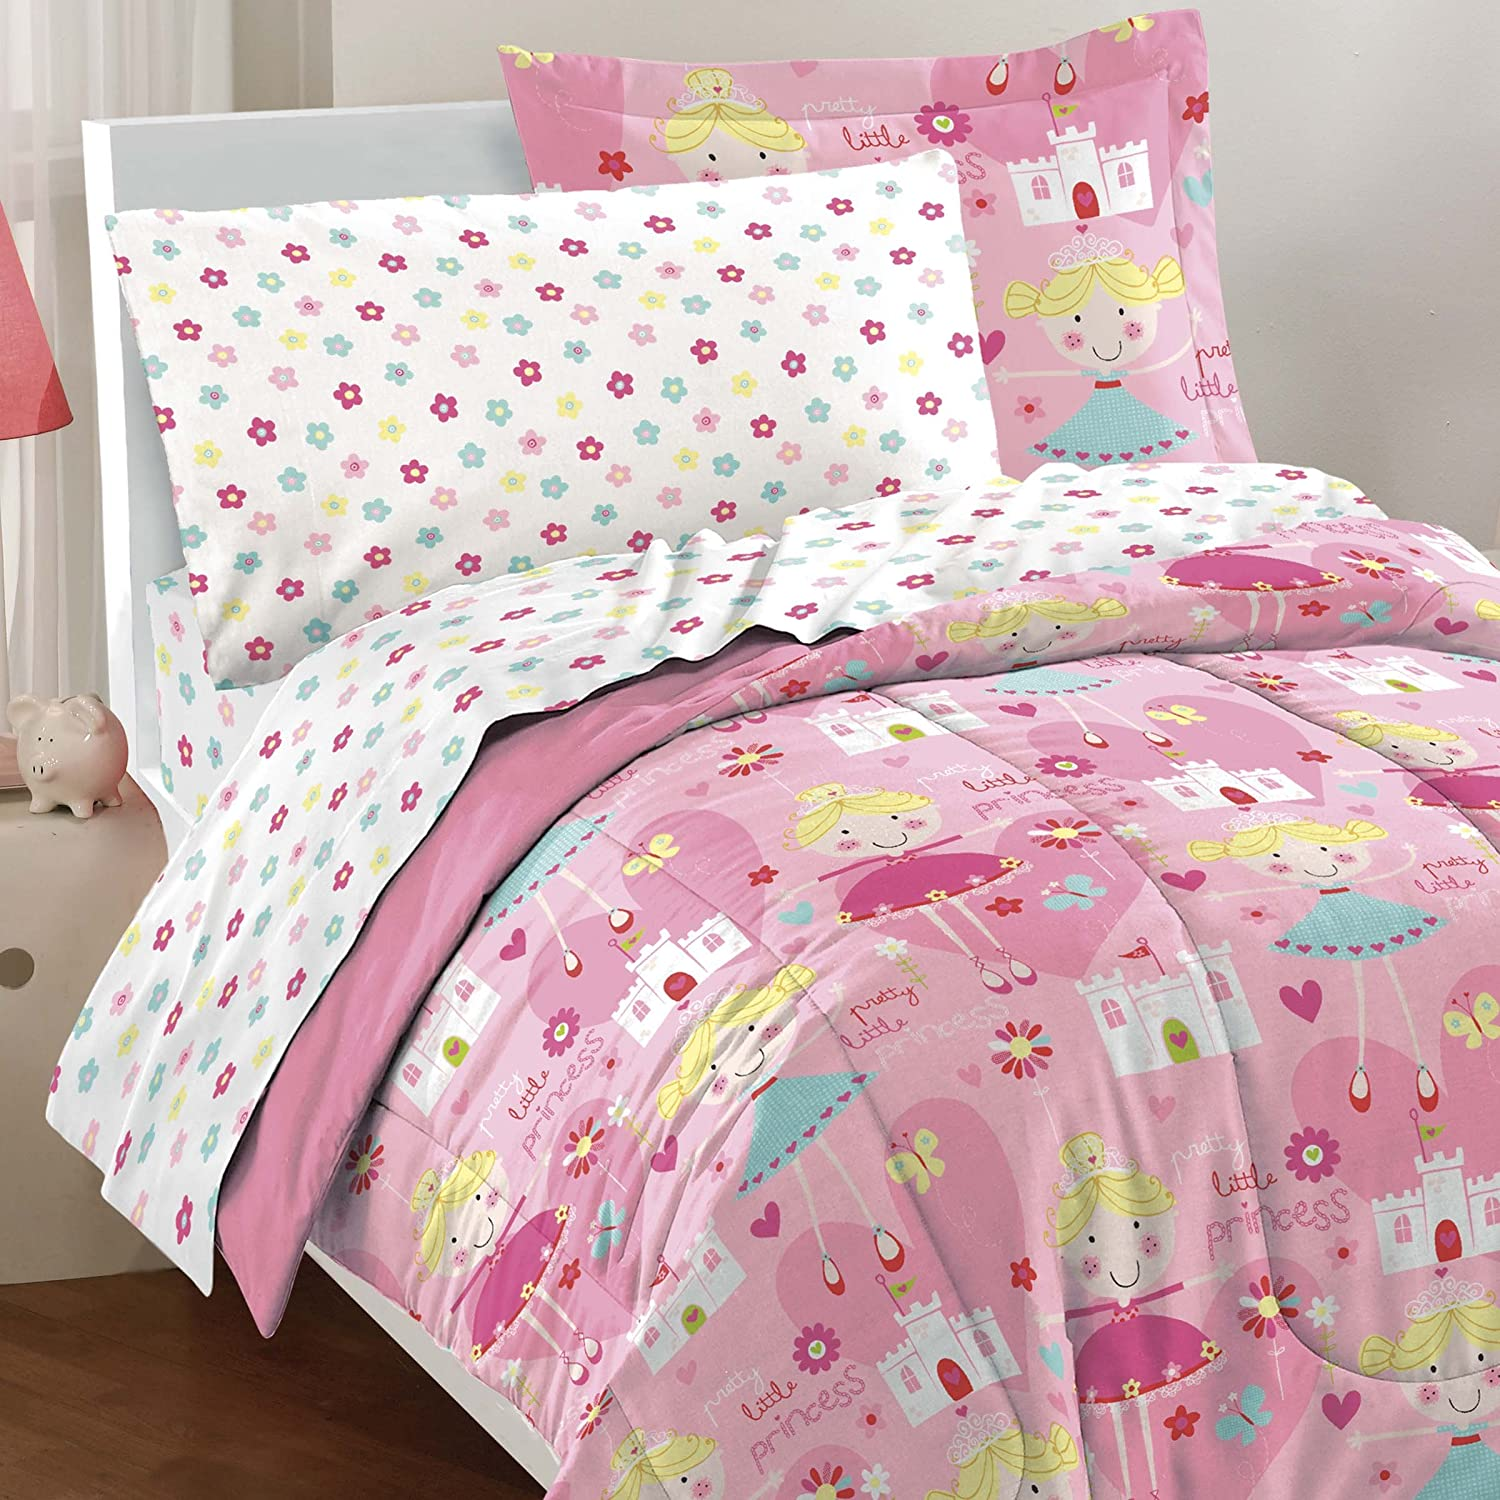 pin factory butterfly sweet purple bed bedding set comforter dream